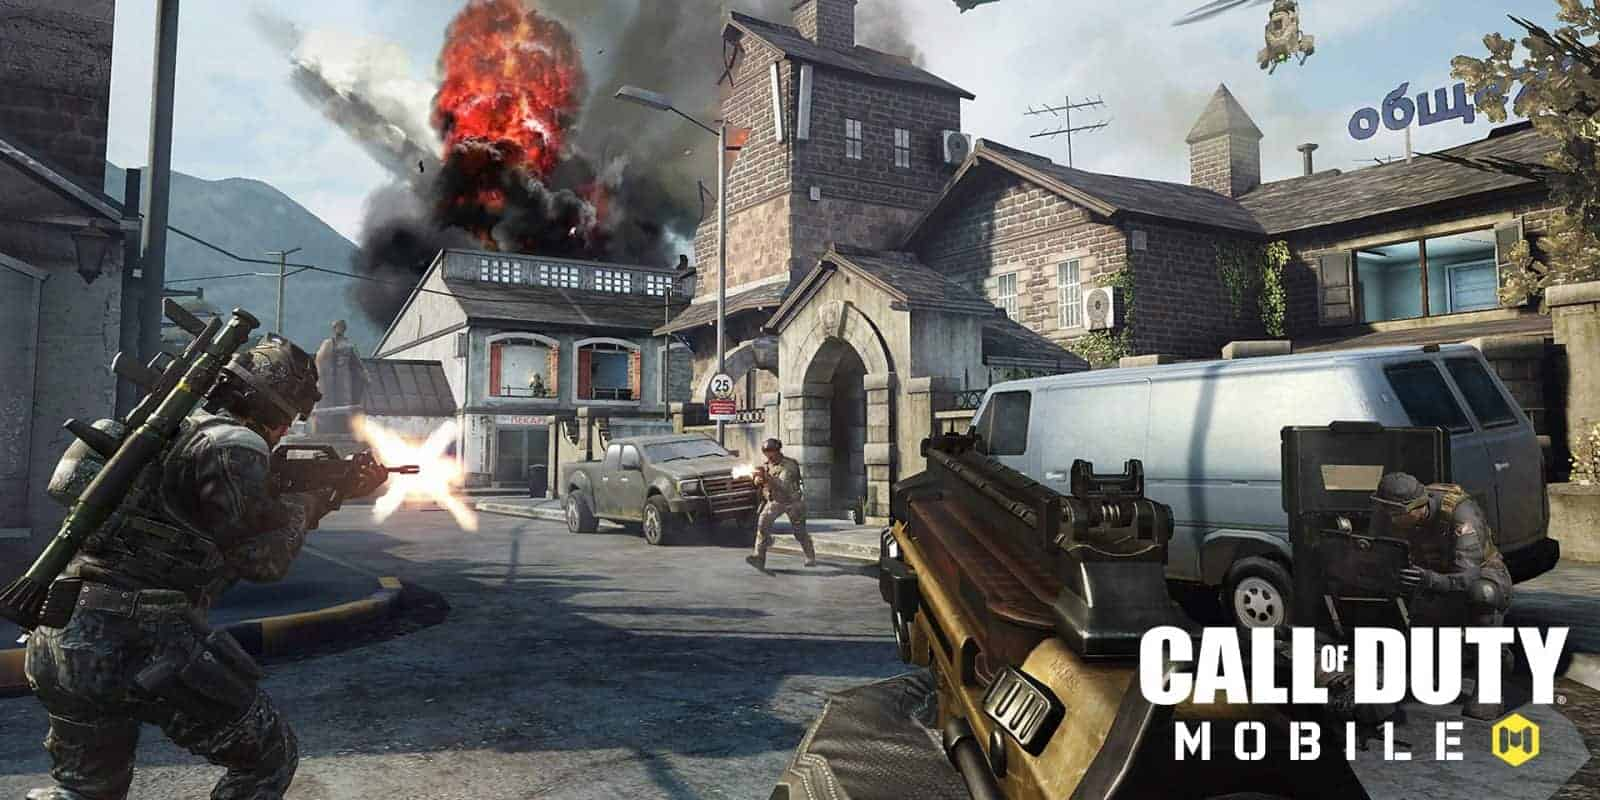 Download Call Of Duty Mobile Apk + OBB Latest v1.0.1 (Official Version)